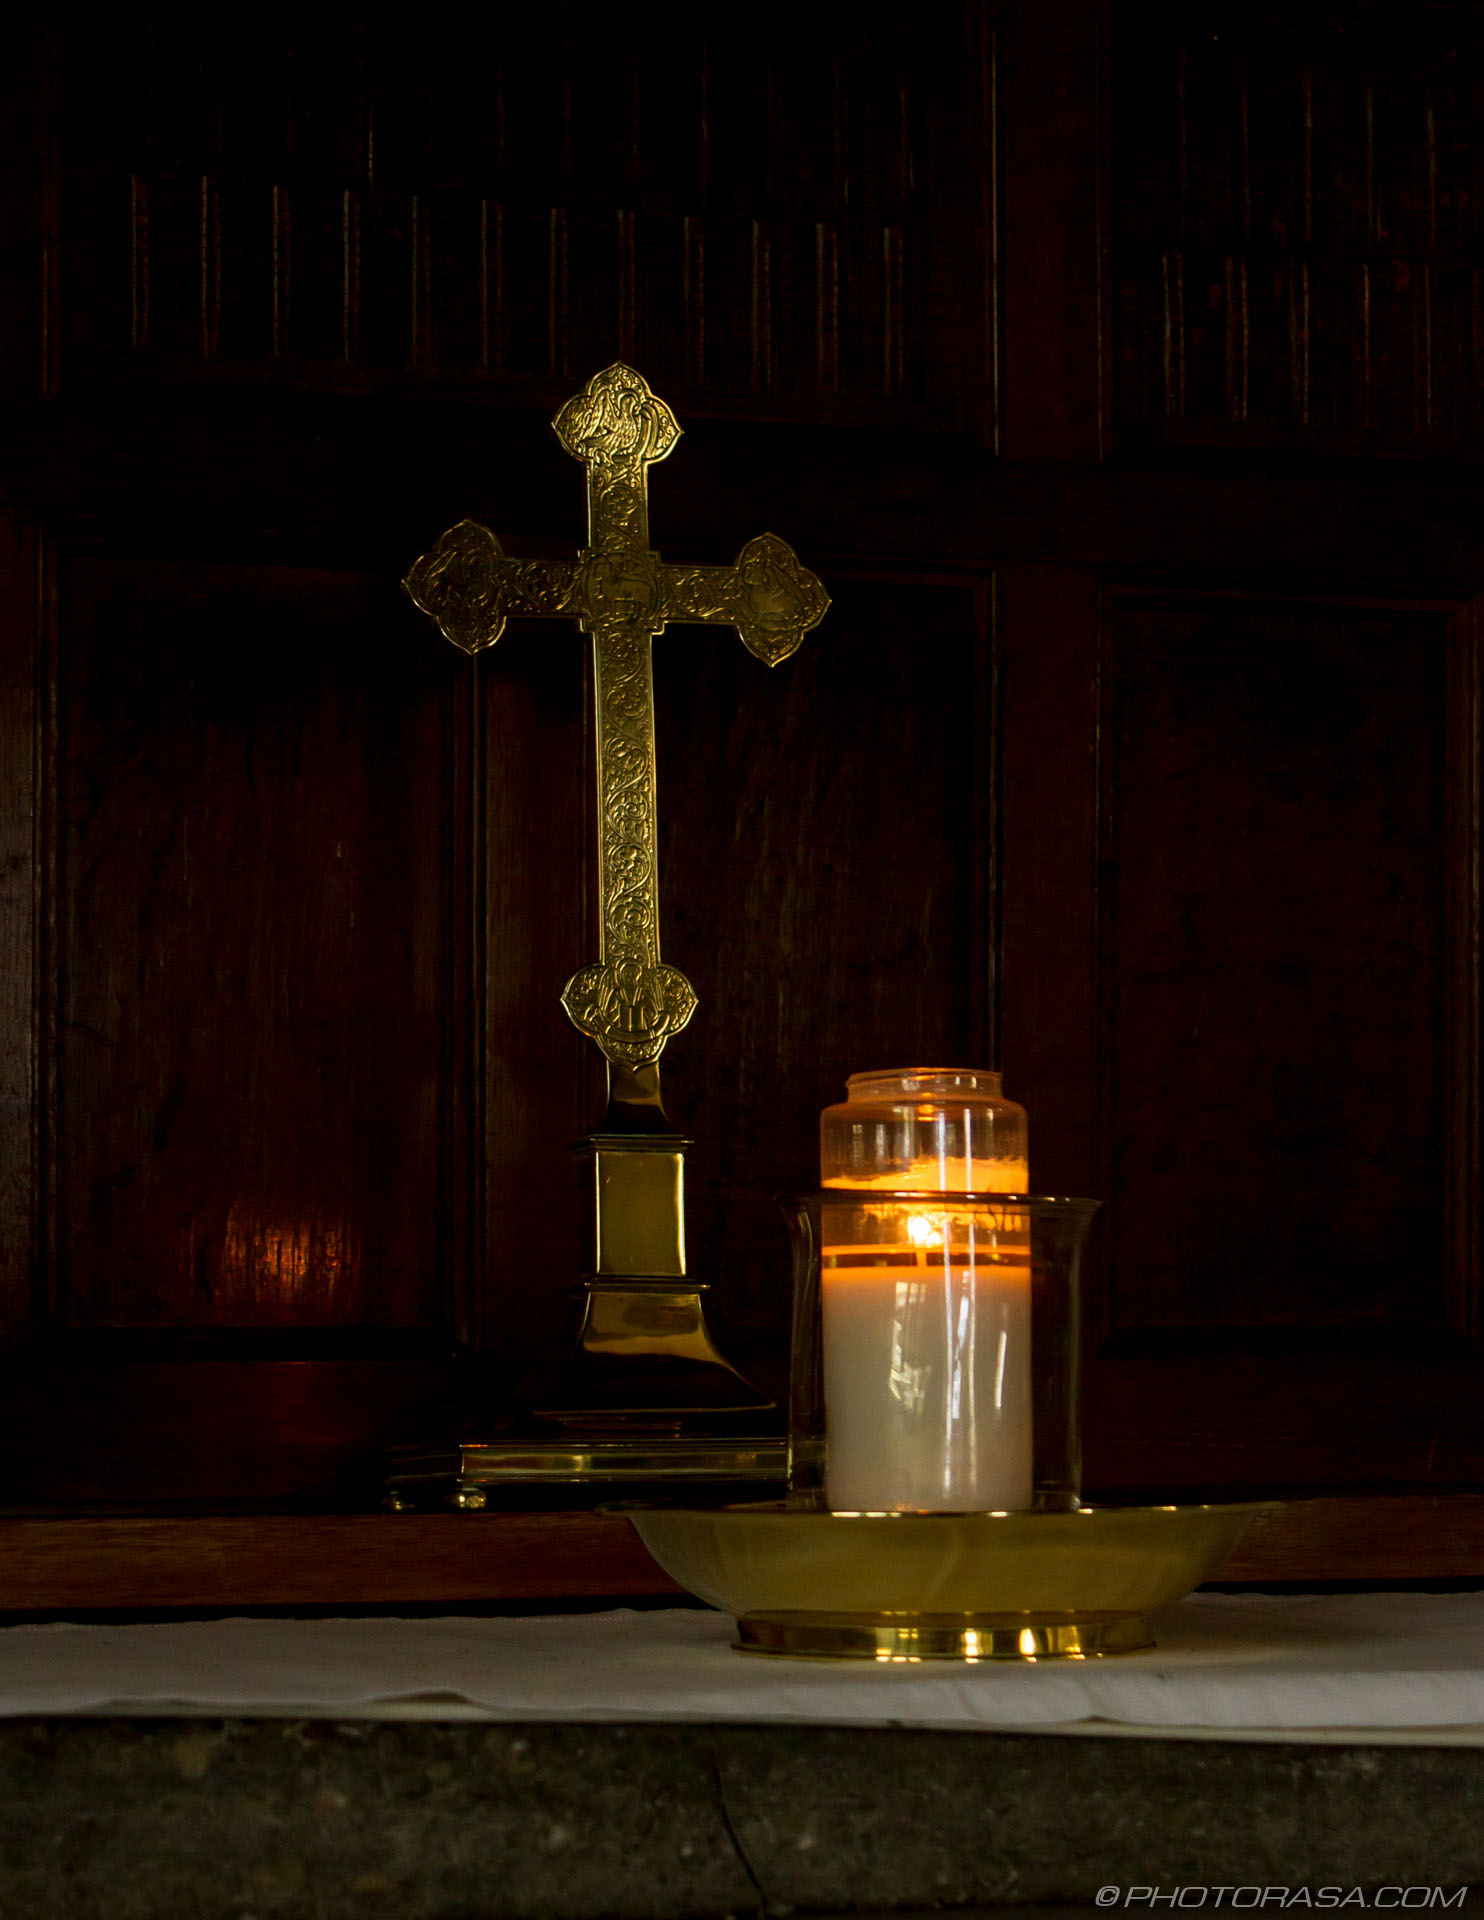 http://photorasa.com/st-marys-church-in-lenham/golden-cross-and-candle/